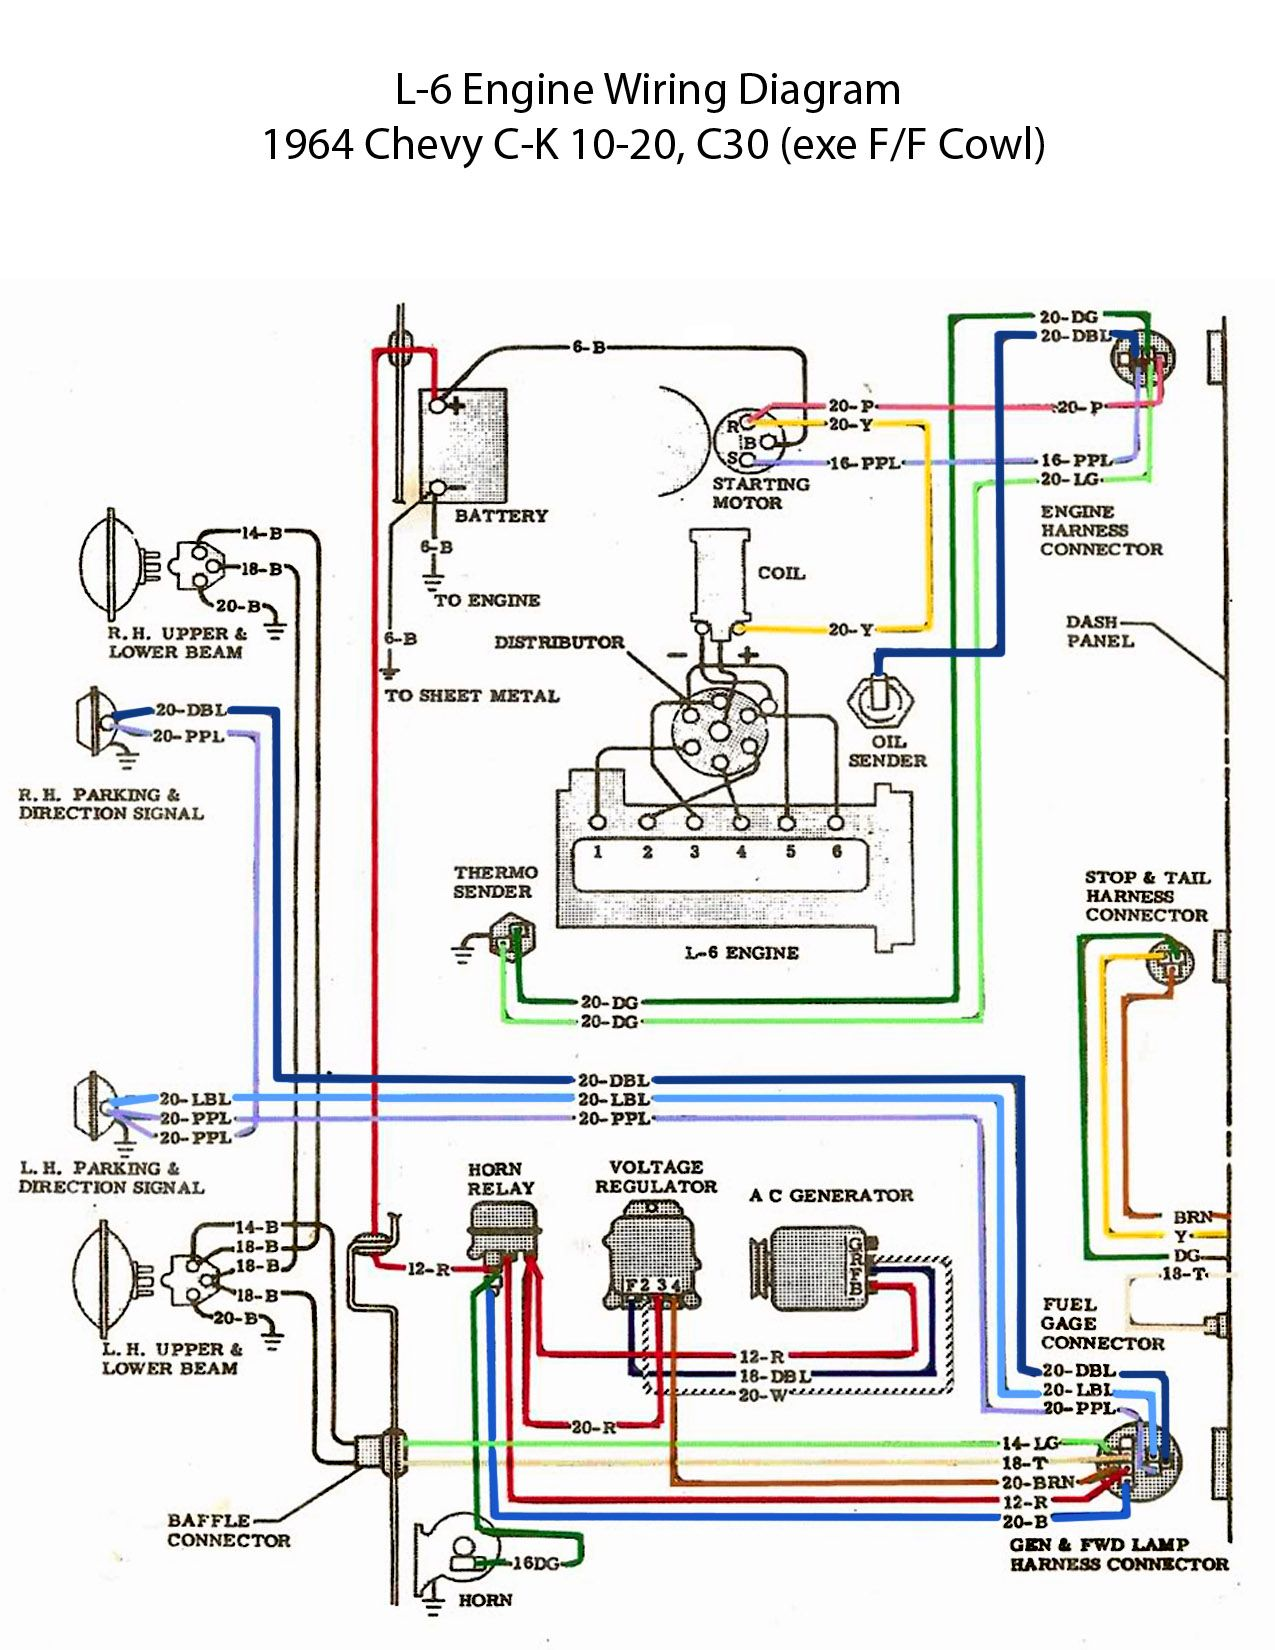 52f445b9f6cba1e2ba90979cb5234ed8 electric l 6 engine wiring diagram '60s chevy c10 wiring  at virtualis.co